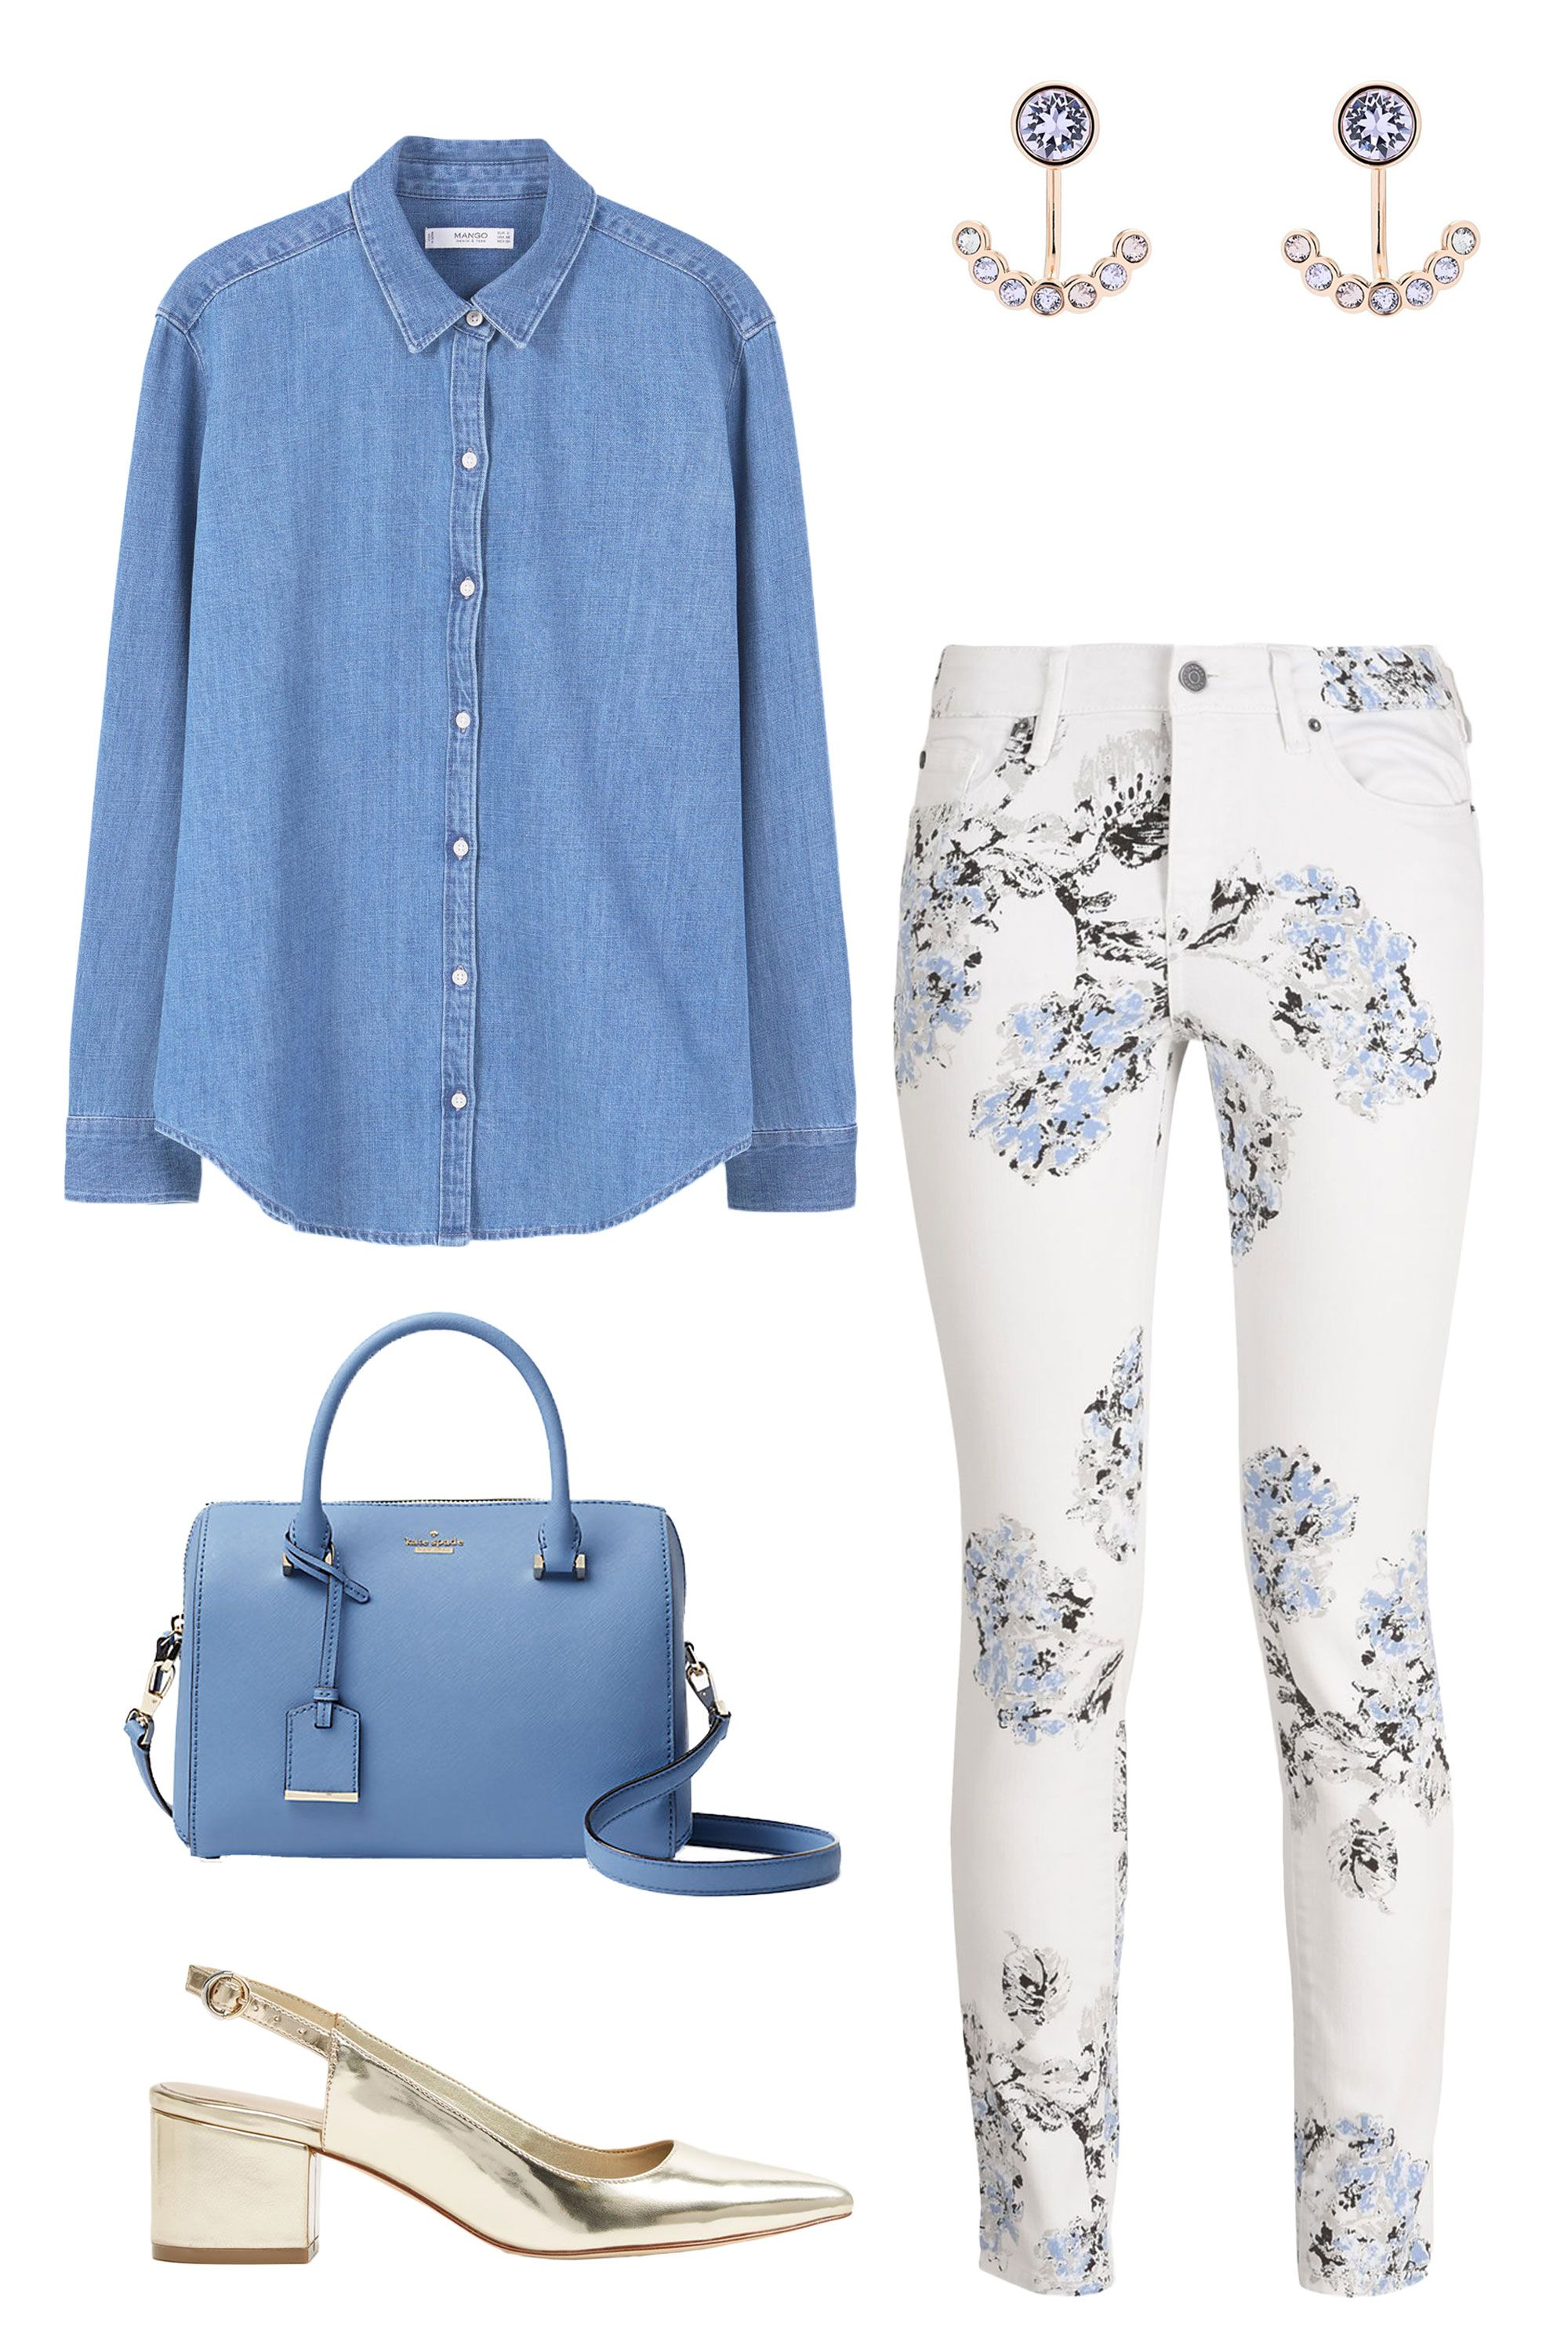 "<p>You'll soon see floral dresses aplenty around the office, but floral skinny jeans? Not so much. Tuck a chambray shirt (double denim!) into the ladylike pair, and add a boss-lady tote—plus (not too) metallic shoes and accessories. </p><p><em data-redactor-tag=""em"">Mango Light Denim Shirt, $60, <a href=""http://shop.mango.com/US/p0/women/clothing/shirts/shirts/light-denim-shirt?id=83043034_TM&n=0&ts=1491599726539"" target=""_blank"" data-tracking-id=""recirc-text-link"">mango.com</a>; <em data-redactor-tag=""em"">Ted Baker London Concentric Swarovski Crystal Ear Jackets, $59, </em><em data-redactor-tag=""em""><a href=""http://shop.nordstrom.com/s/ted-baker-london-concentric-swarovski-crystal-ear-jackets/4594811?origin=category-personalizedsort&fashioncolor=LIGHT%20BLUE"" target=""_blank"" data-tracking-id=""recirc-text-link"">nordstrom.com</a>; </em>Armani Exchange Floral Print Super Skinny Jeans, $120, <a href=""http://bit.ly/2q1l37L"" target=""_blank"" data-tracking-id=""recirc-text-link"">armaniexchange.com</a>; </em><em data-redactor-tag=""em""><em data-redactor-tag=""em"">Aldo Valterra, $60, <a href=""http://www.aldoshoes.com/us/en_US/Women/New-Arrivals/c/101/Valterra/p/50120465-82#"" target=""_blank"" data-tracking-id=""recirc-text-link"">aldoshoes.com</a>; <em data-redactor-tag=""em""><em data-redactor-tag=""em"">Kate Spade New York Cameron Street Large Lane, $278, <a href=""https://www.katespade.com/products/cameron-street-large-lane/PXRU7511.html?dwvar_PXRU7511_color=433&cgid=ks-handbags-satchels#srule=price-low-to-high&sz=99&start=5&cgid=ks-handbags-satchels"" target=""_blank"" data-tracking-id=""recirc-text-link"">katespade.com</a></em></em></em></em></p>"